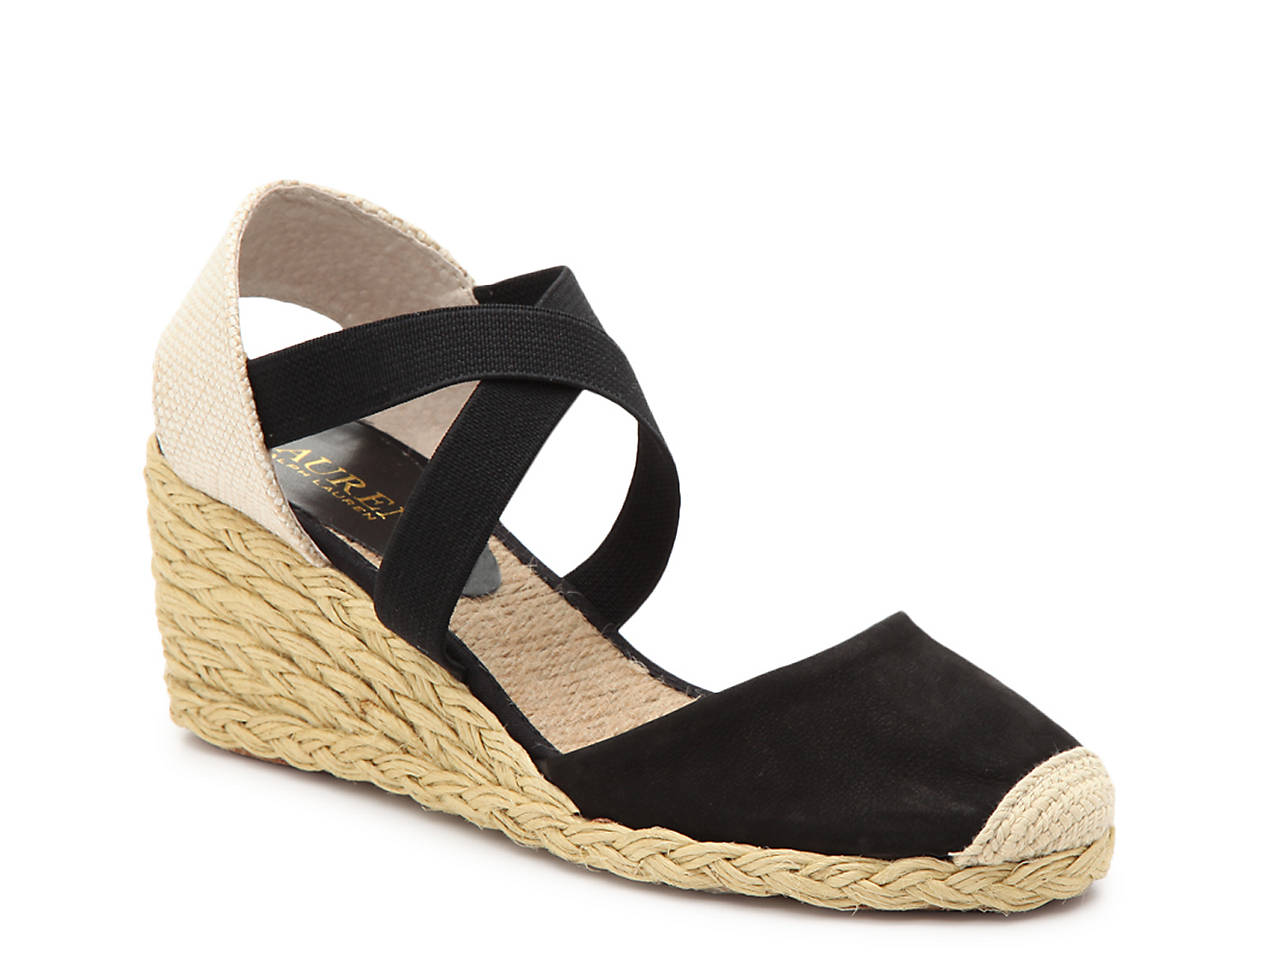 e5d00b1bed4 Casandra Wedge Sandal